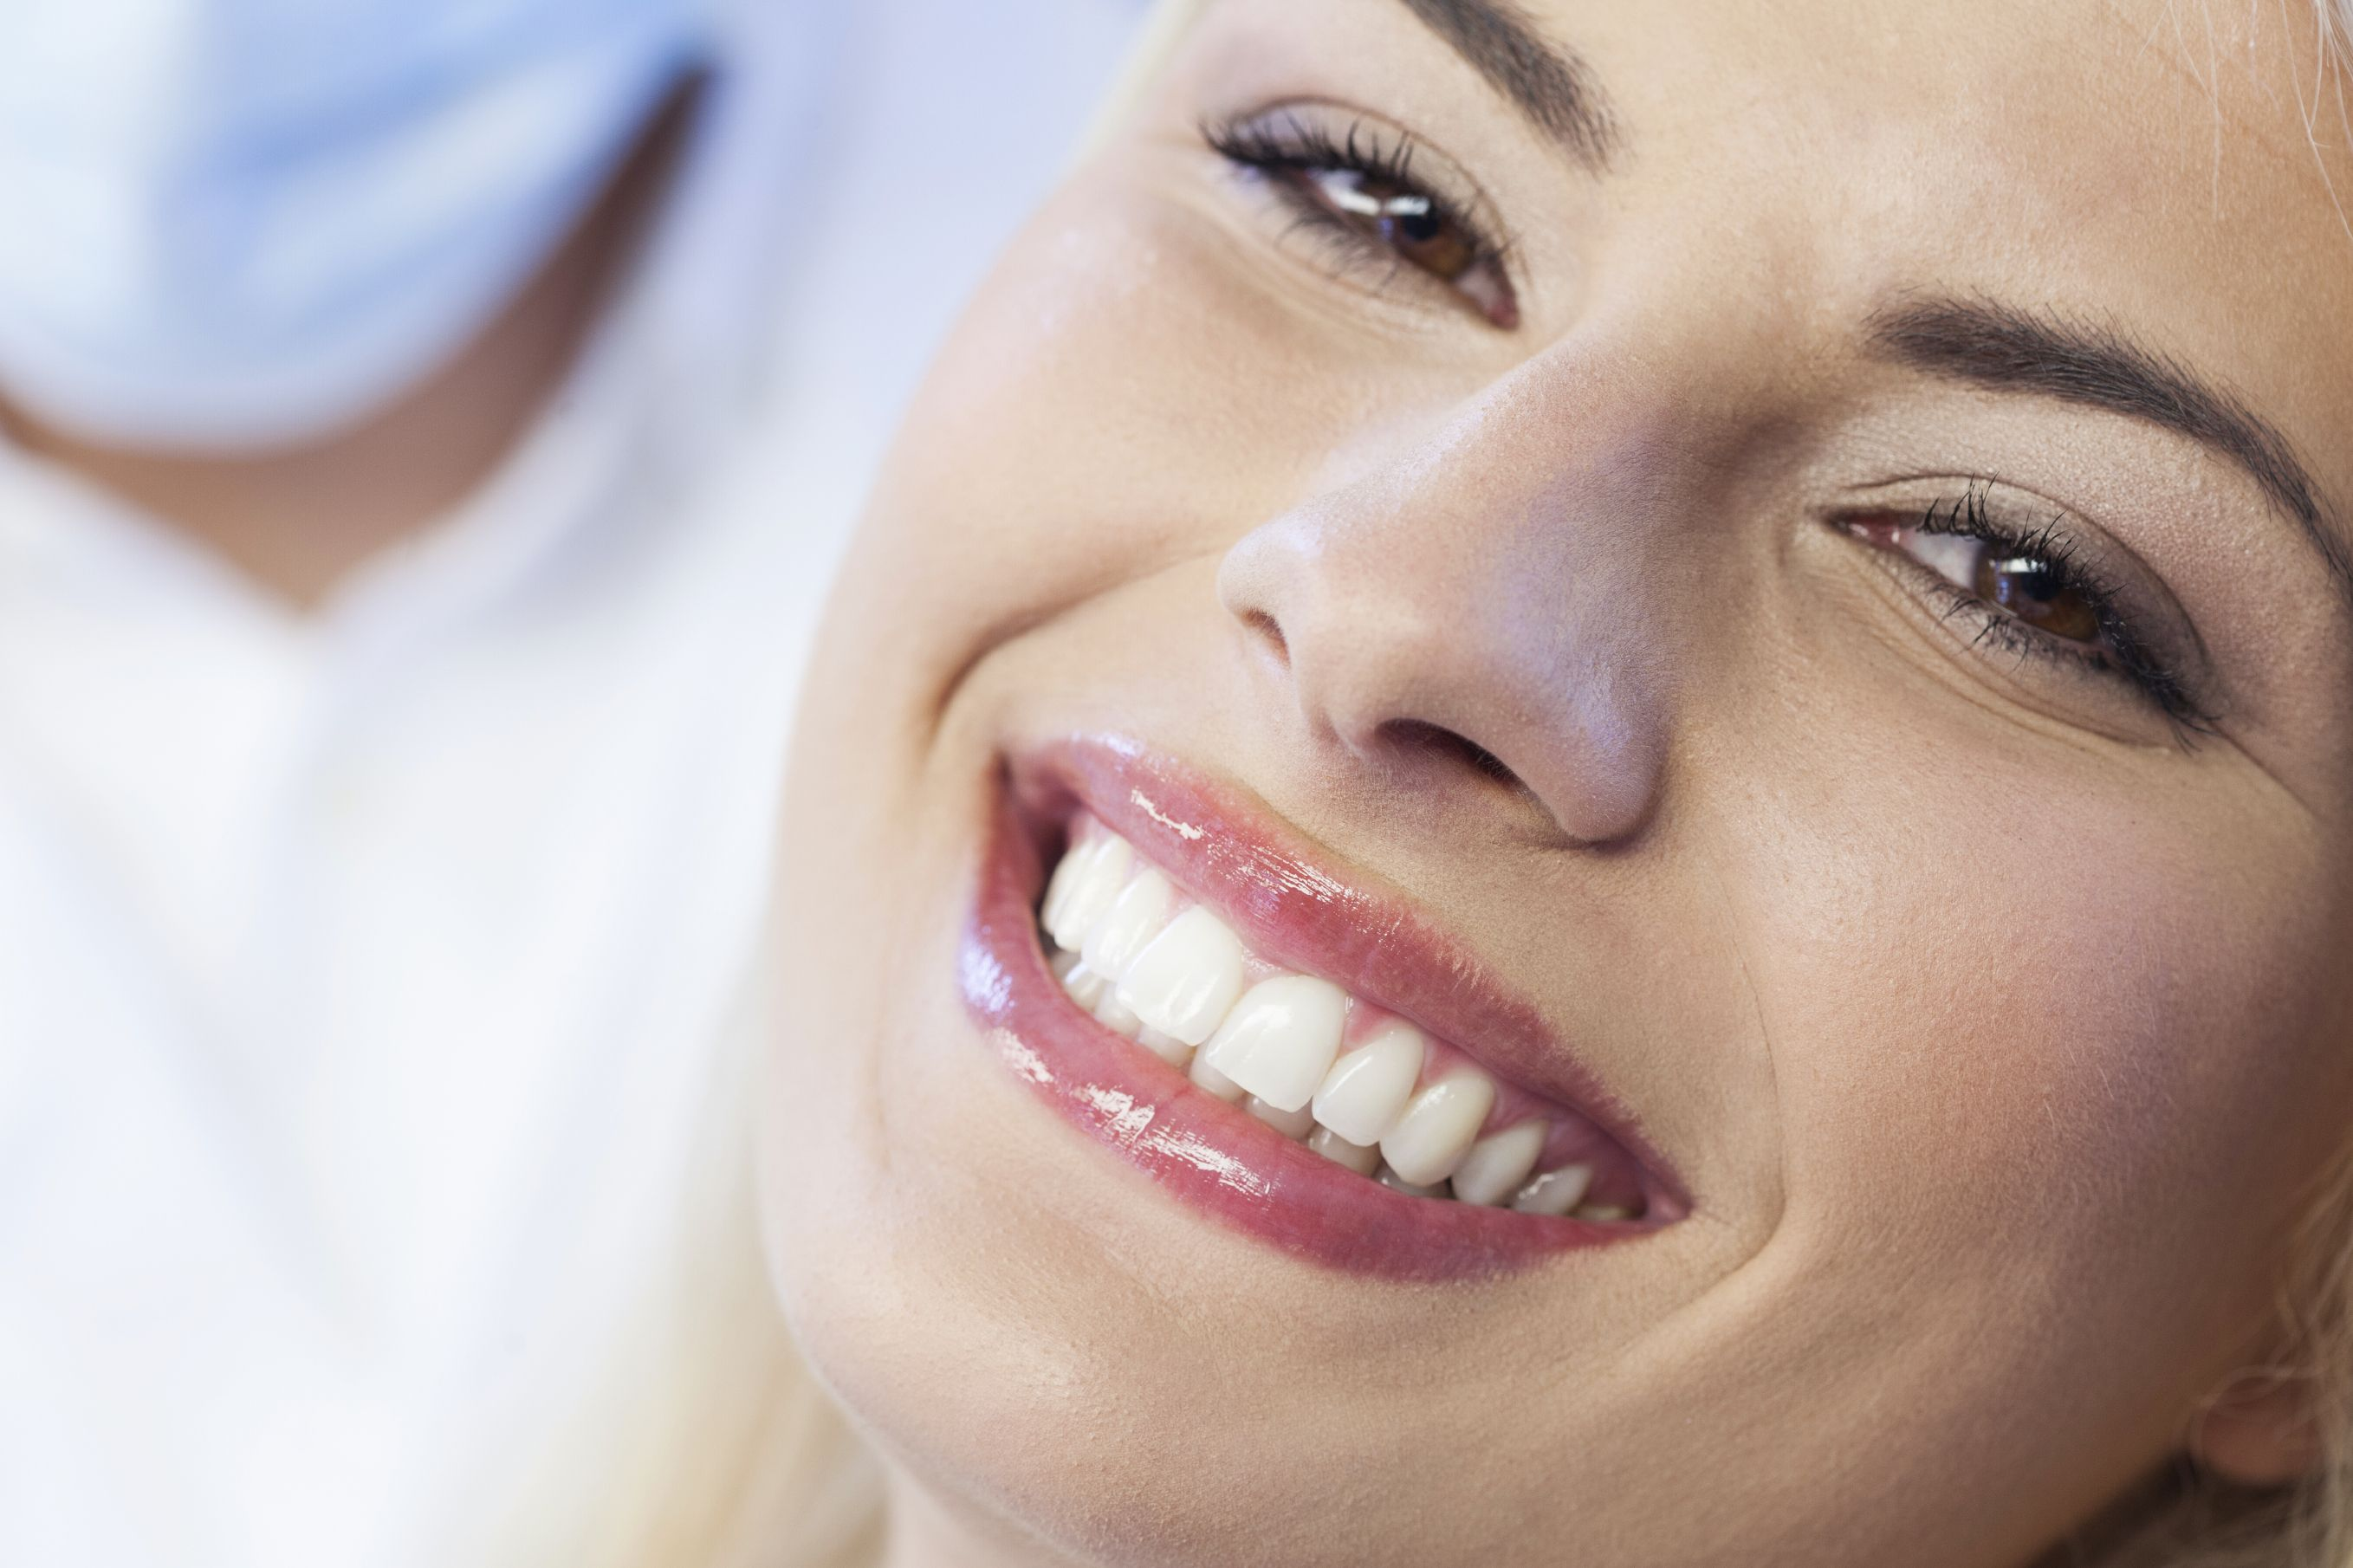 Treatments to Correct Gapped Teeth